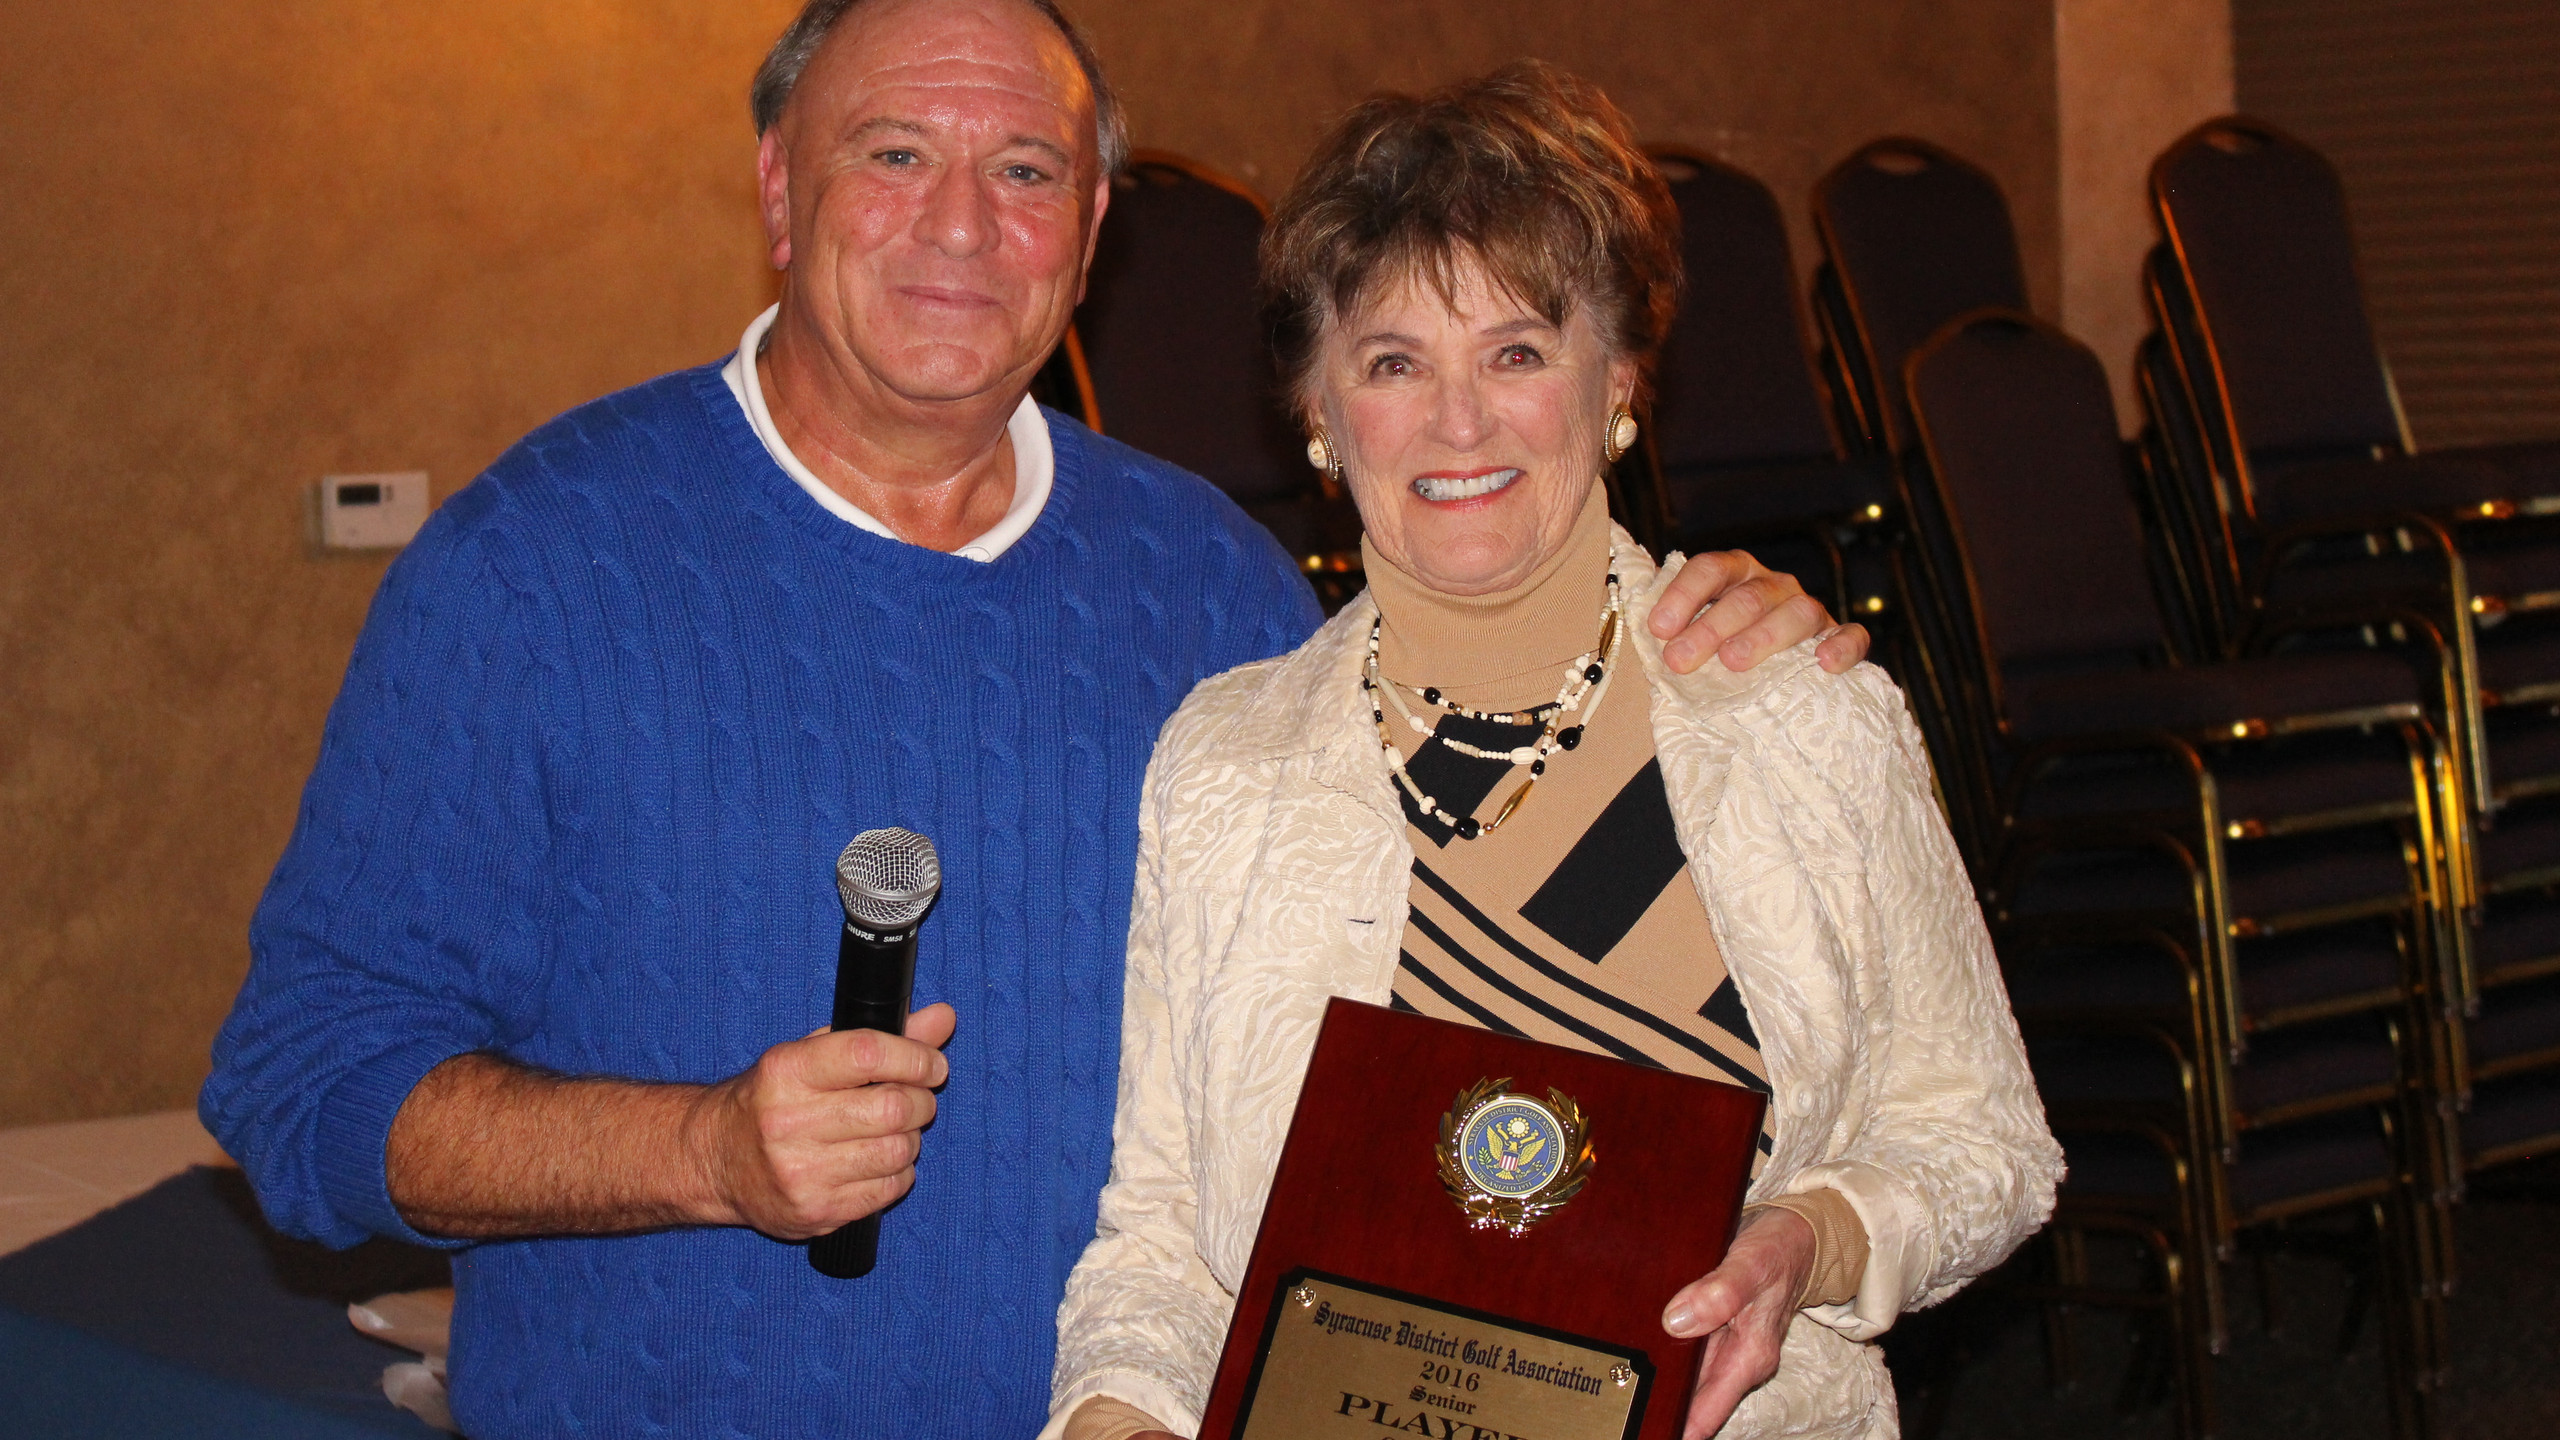 Accepting the award for Mike Naton, 2016 Senior Player of the Year, was his mother Joan.